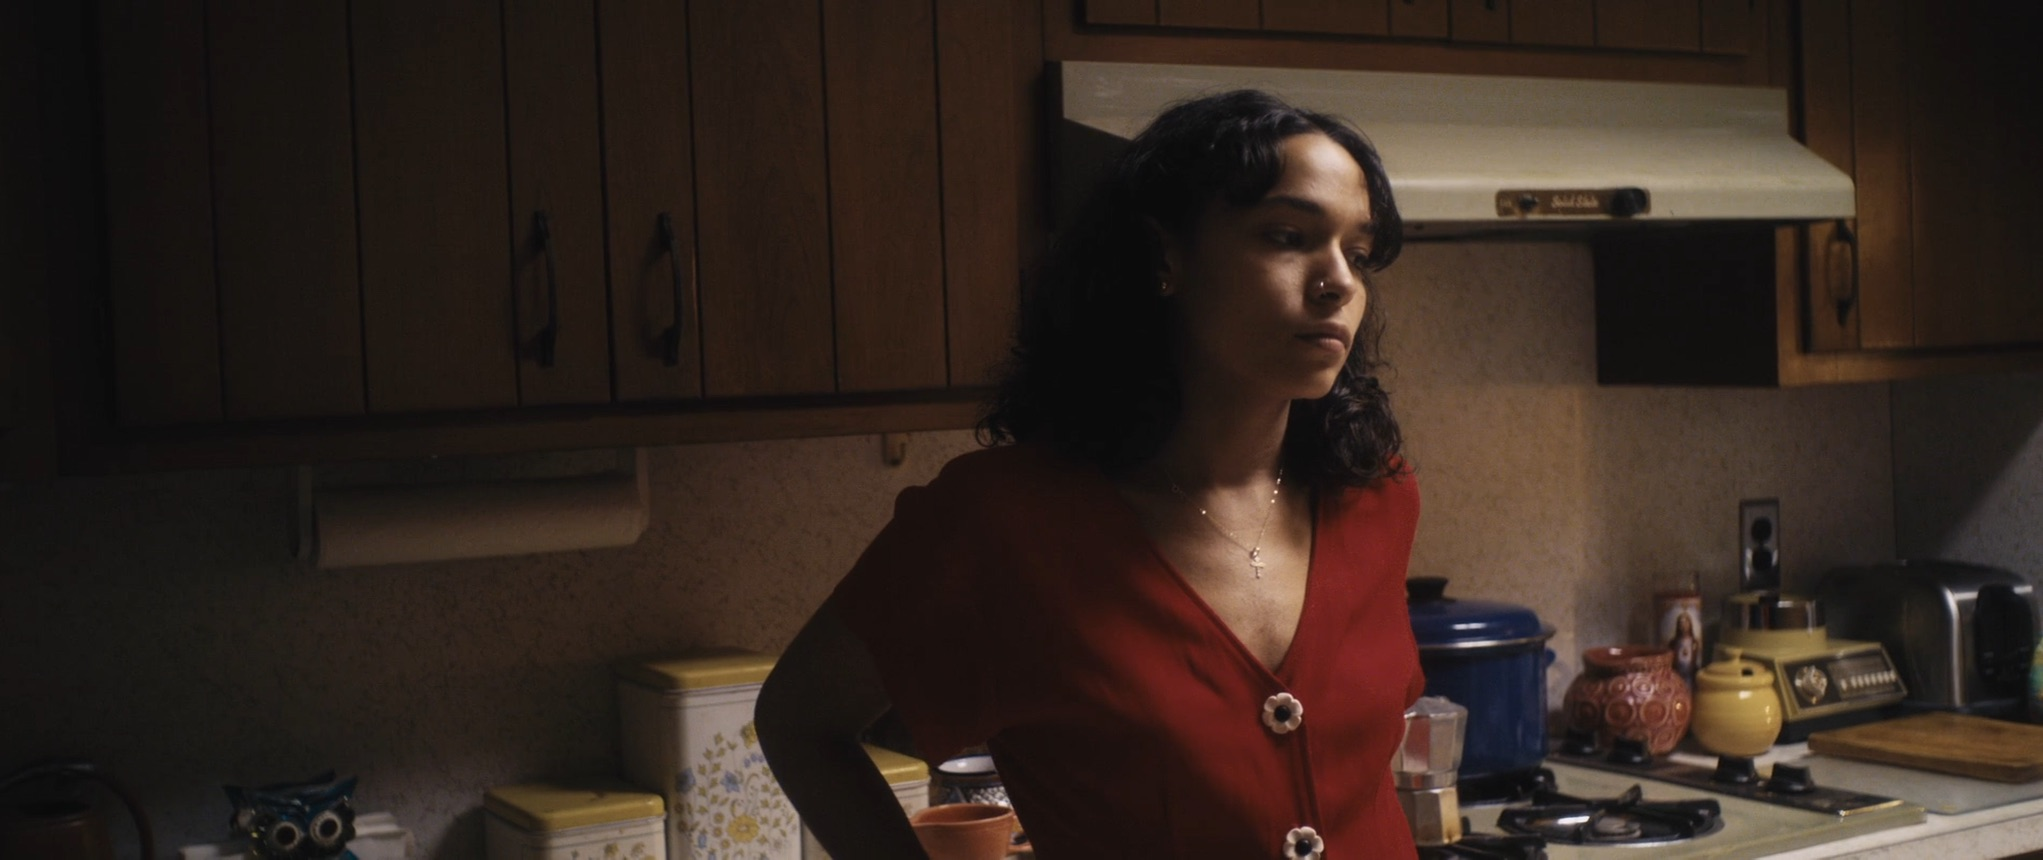 REVIEW: Princess Nokia Is Vulnerable & Flirty in Sensitive Romantic Drama 'Angelfish'